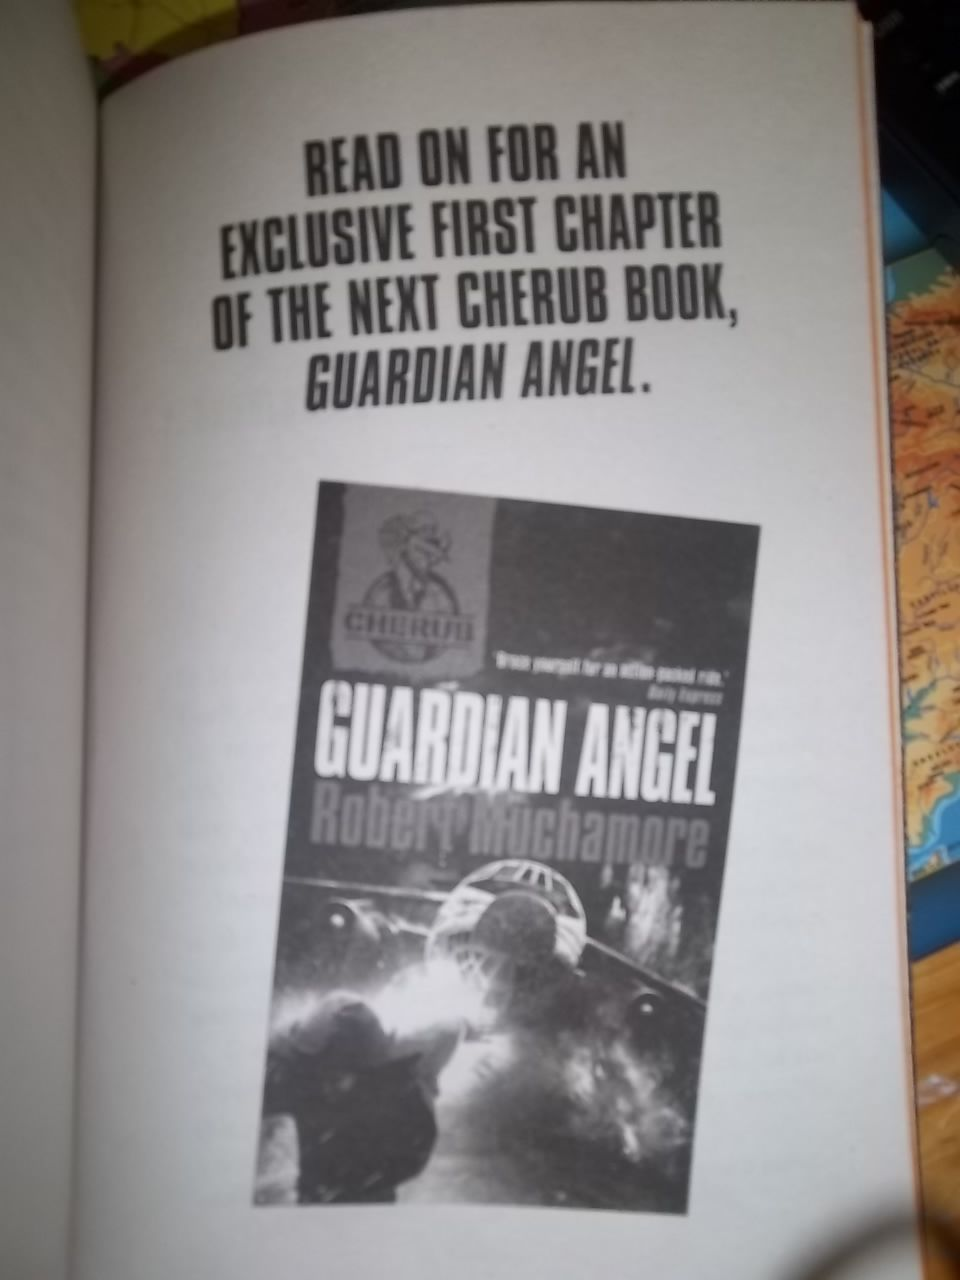 guardian angel robert muchamore pdf